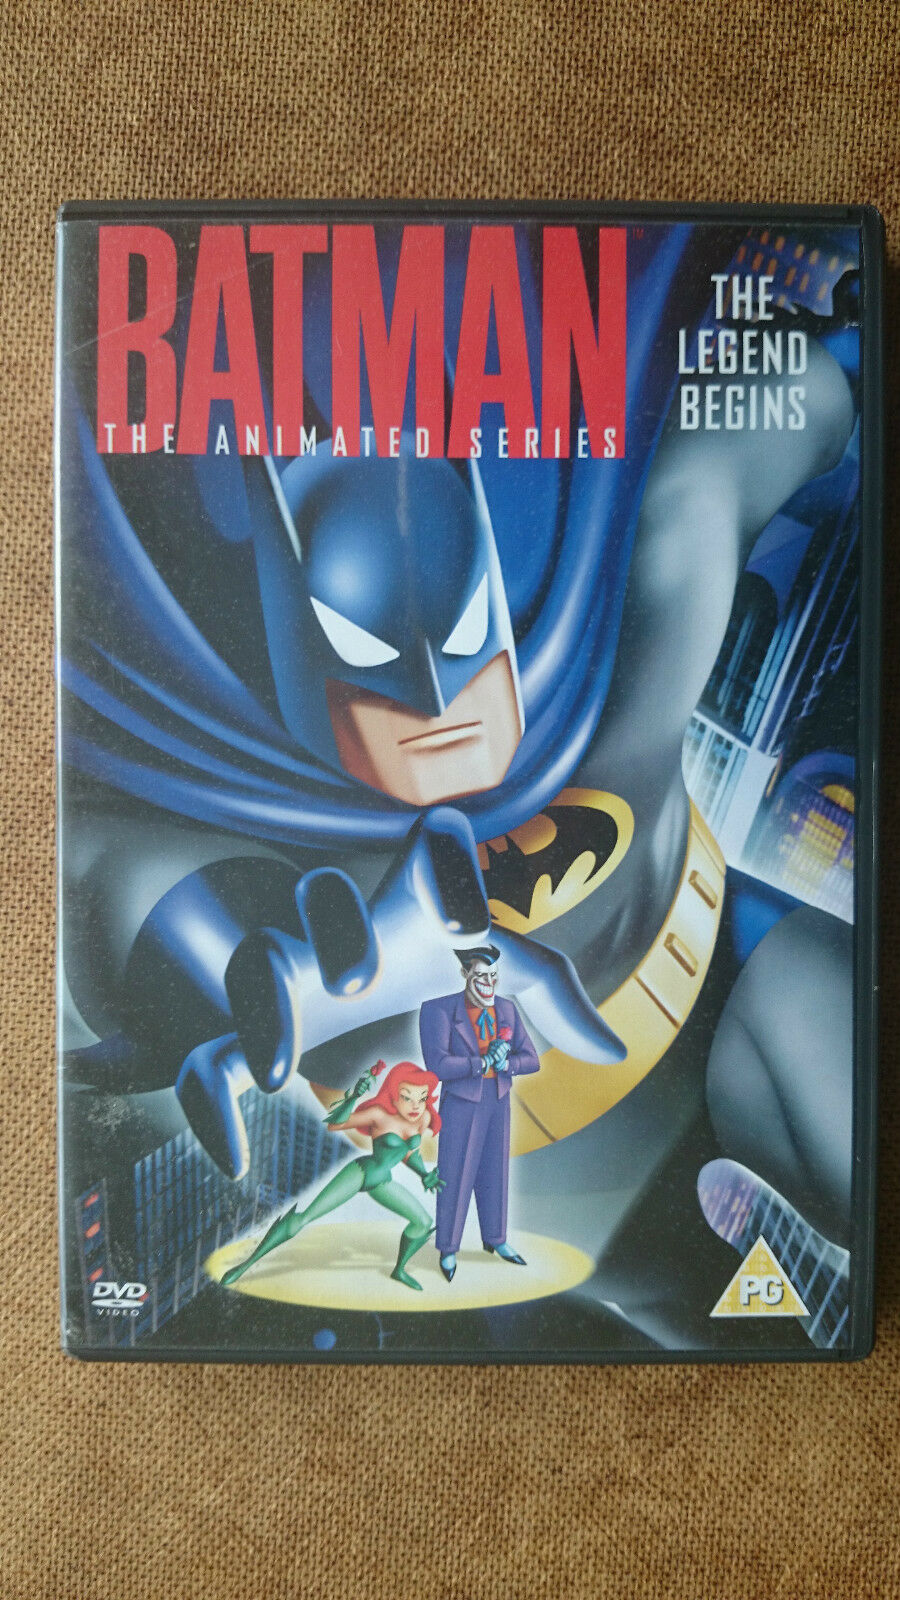 Batman - The Animated Series - The Legend Begins (DVD, 2004)